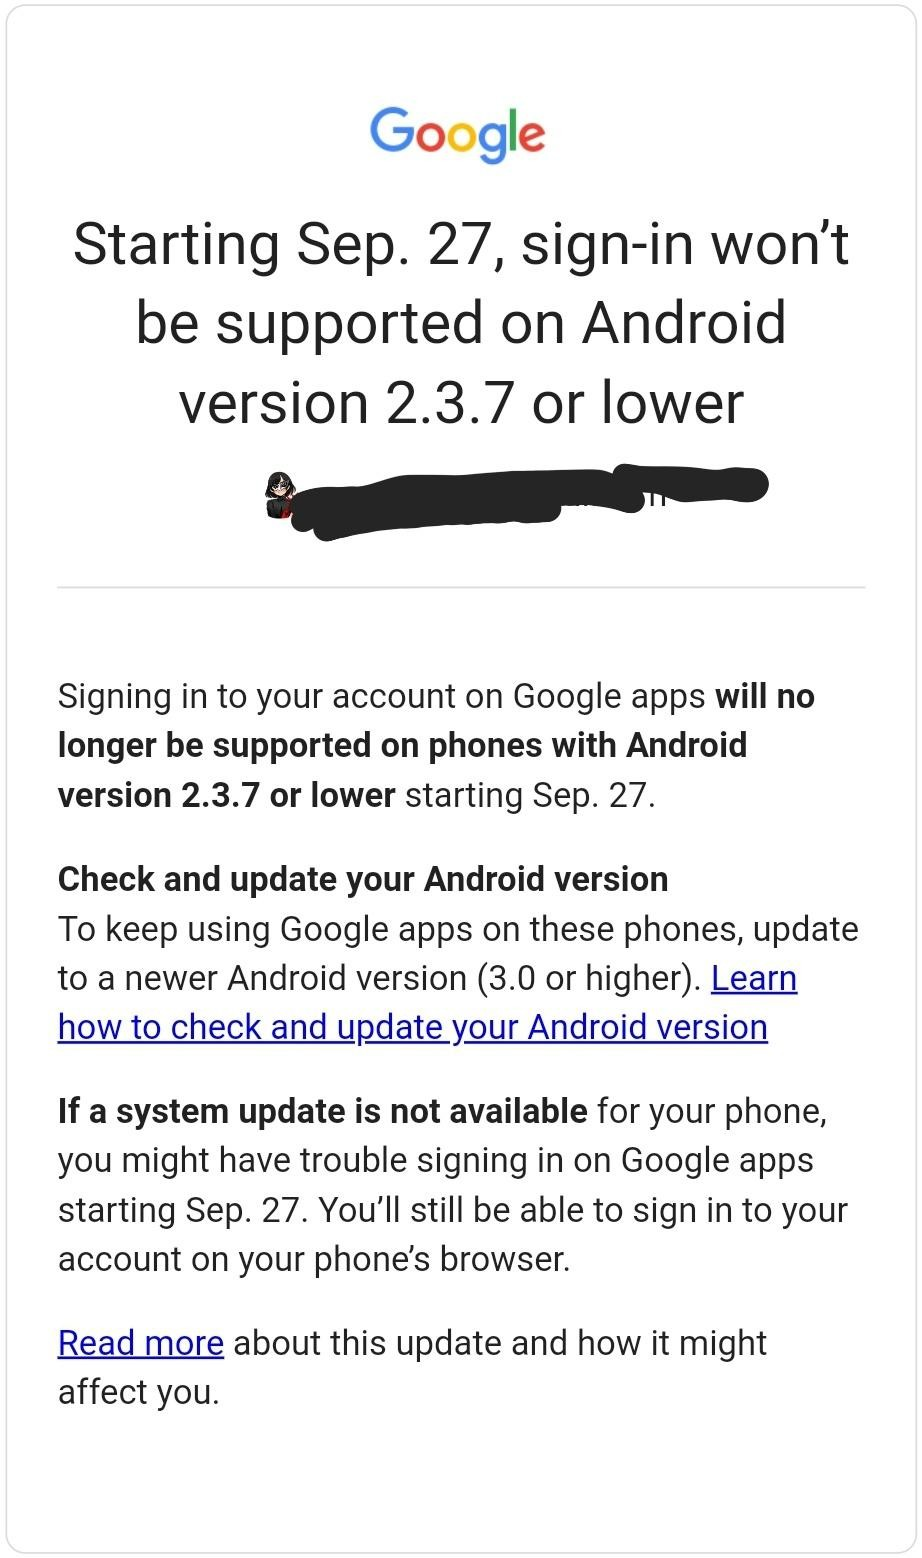 Screenshot of an email sent by Google for ending sign-in support